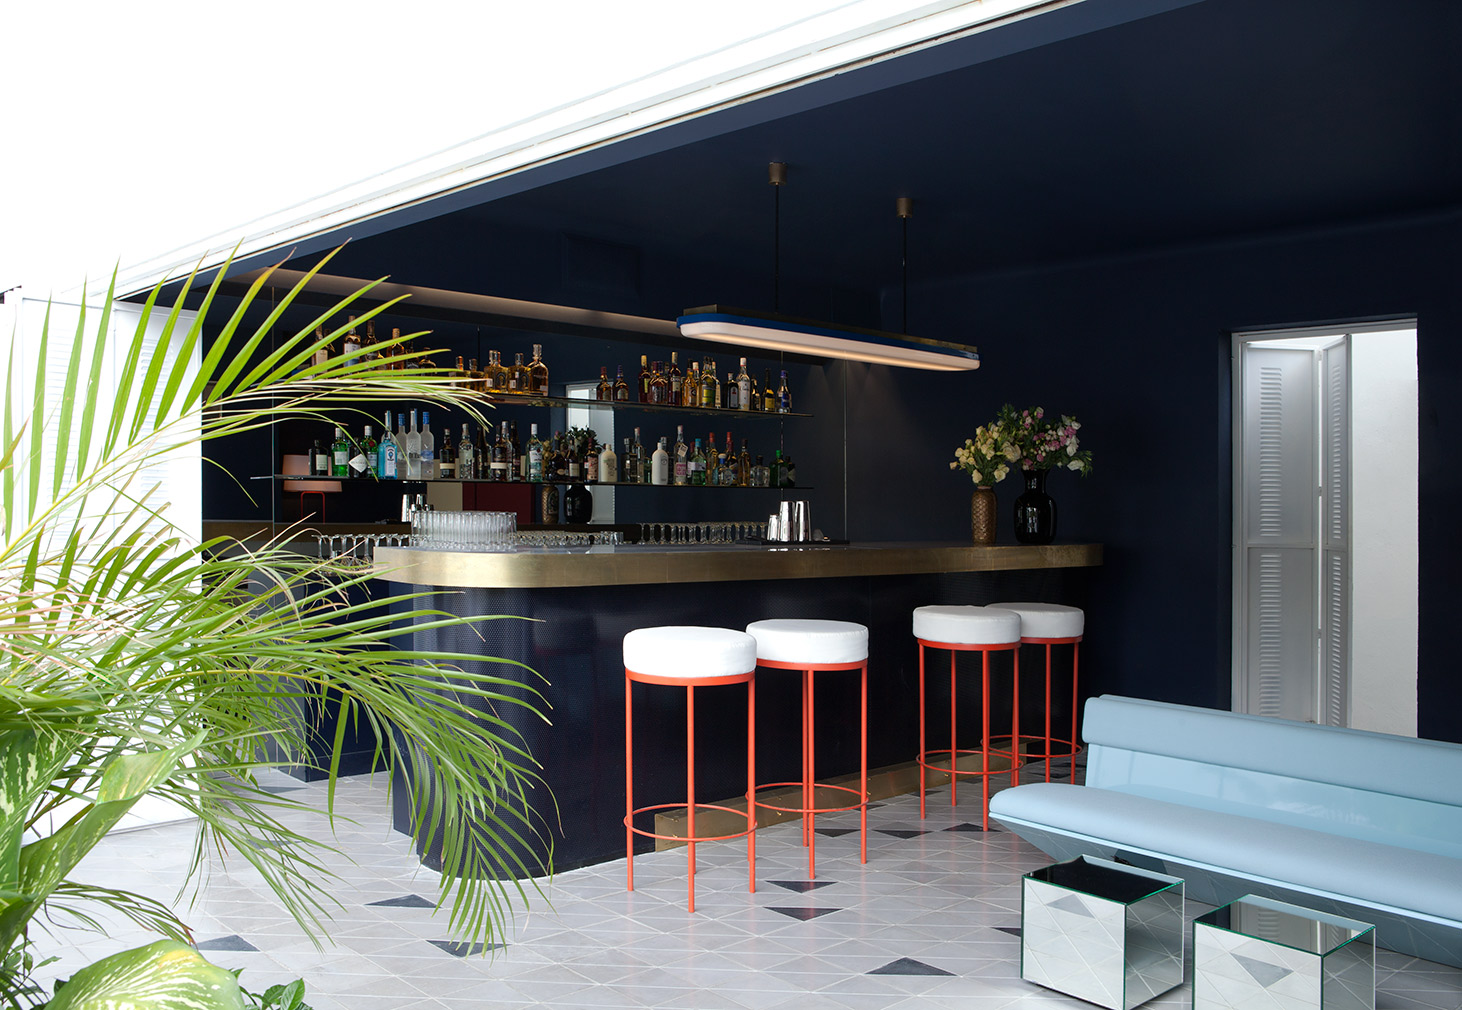 Casa Fayette hotel takes over an art deco mansion in ...